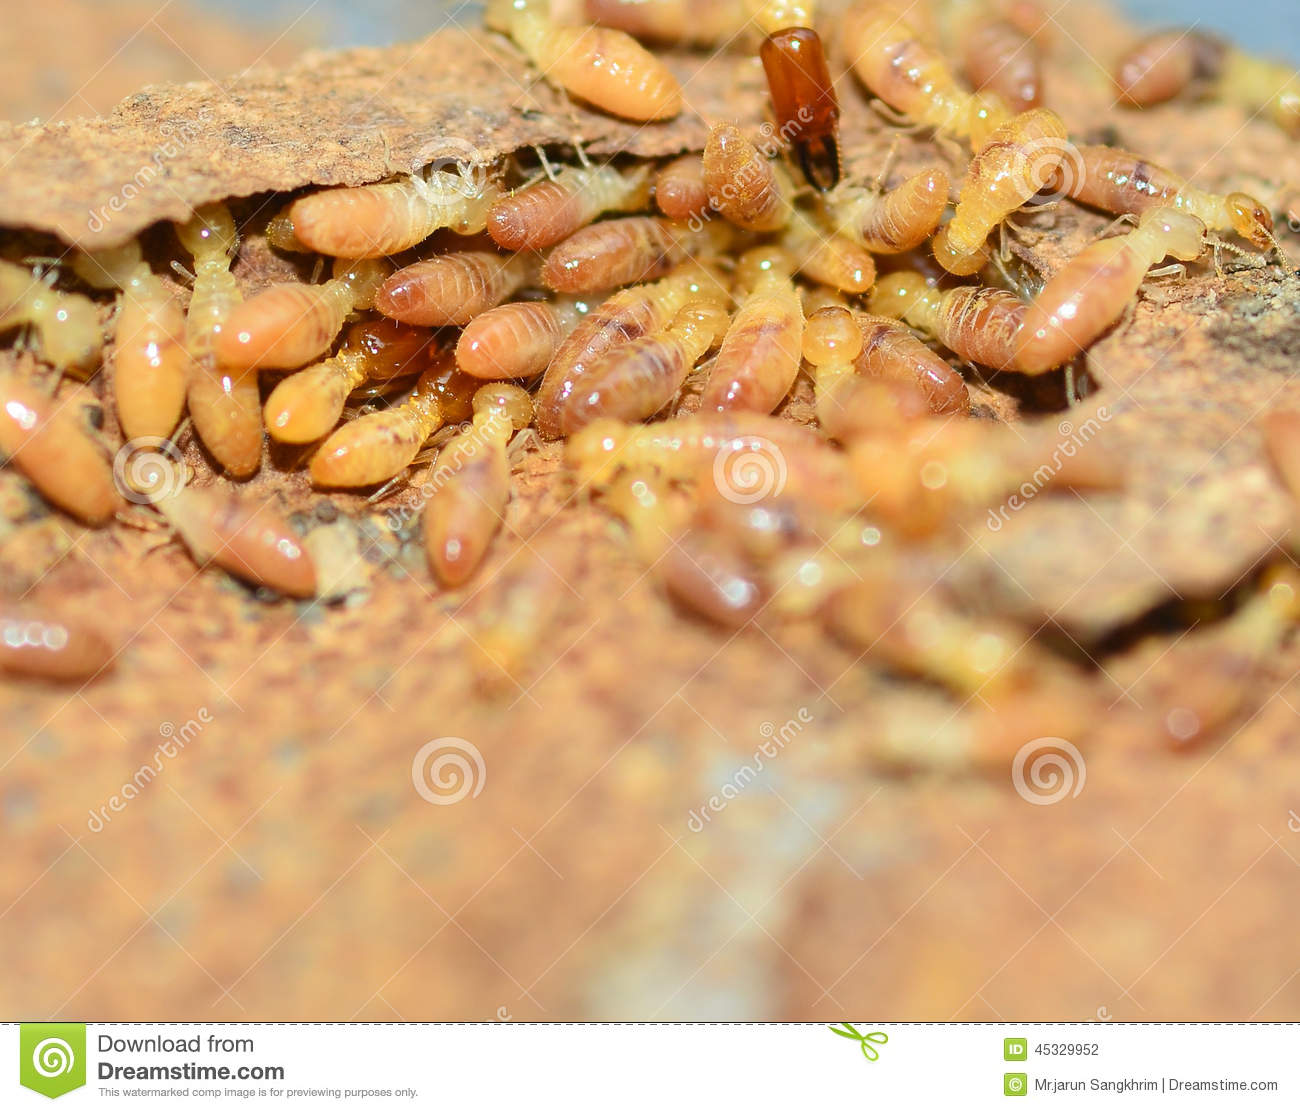 6 Easy Ways To Prevent Termites From Spreading In Your Home |Termites Eating House